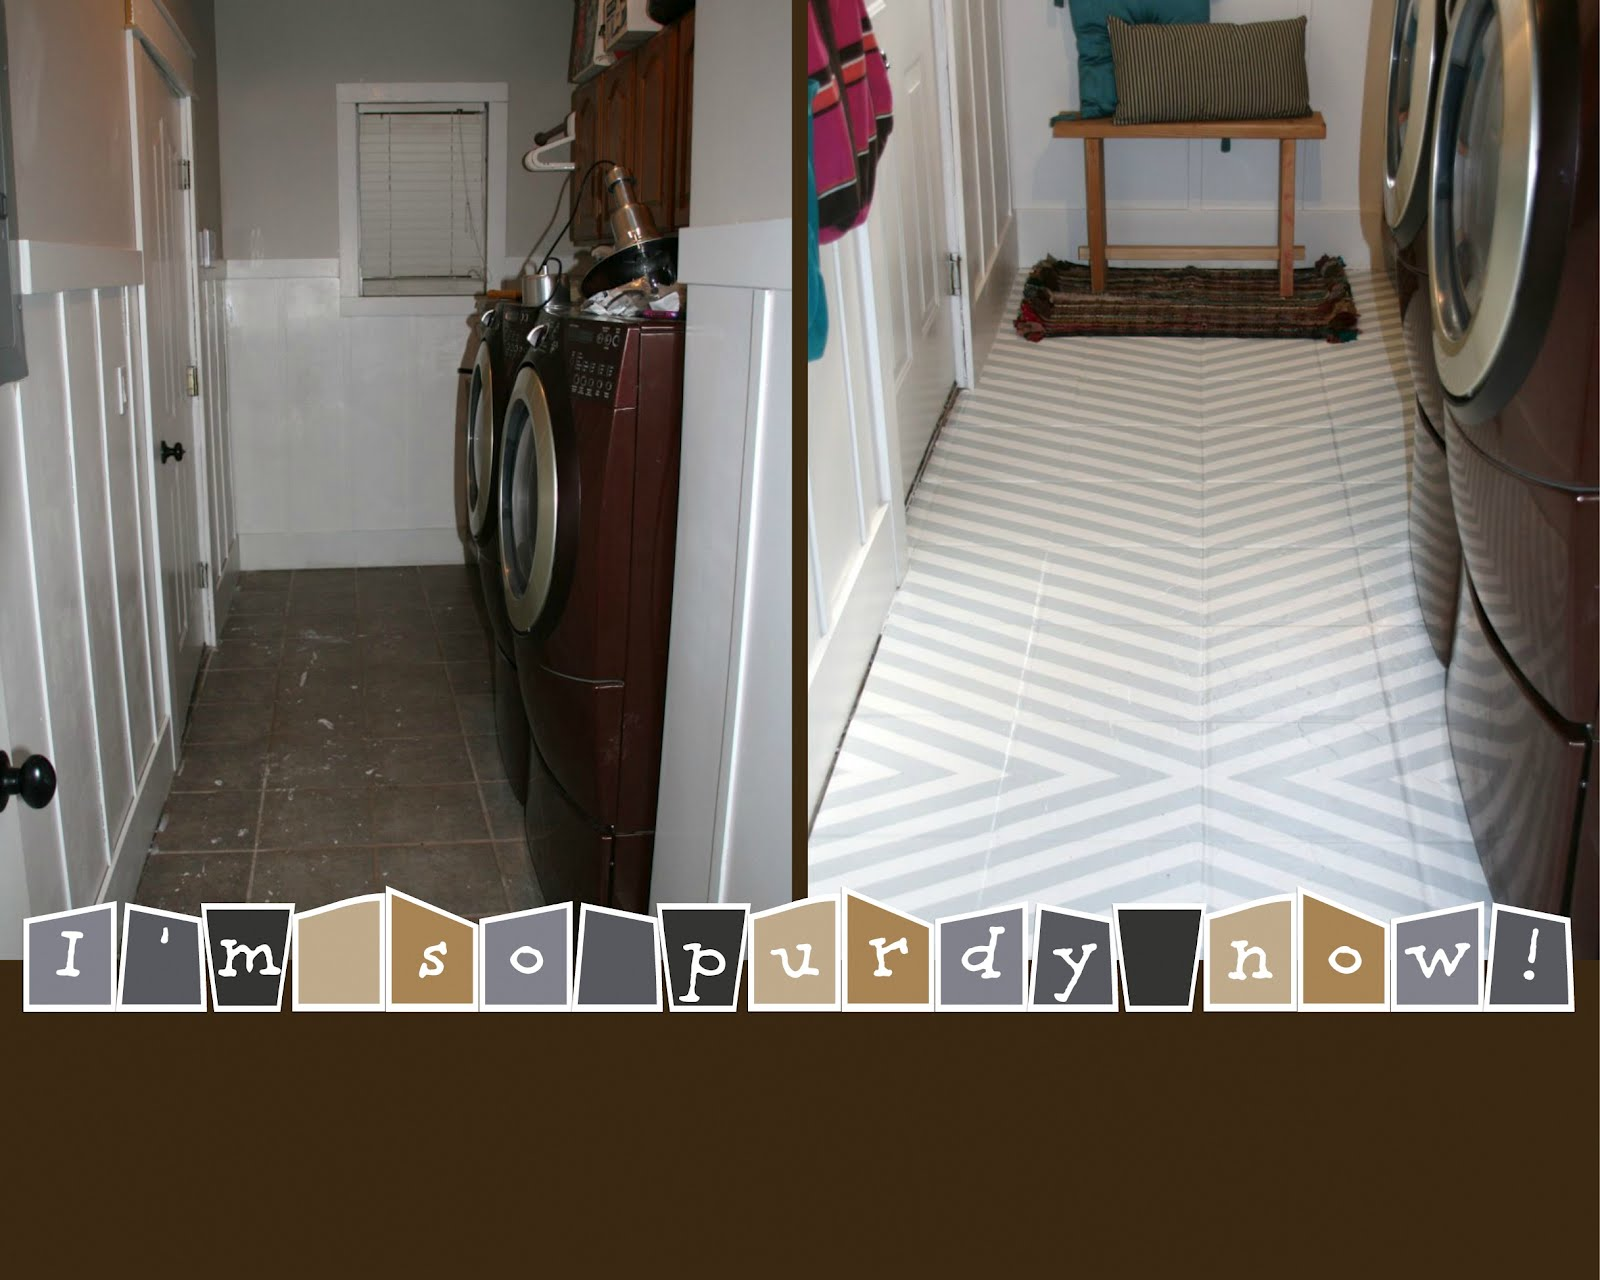 How to paint tile floors a tutorial love stitched not too shabby for a flippin awesome floor heres the breakdown gripper primer 23 2 gallons of behr brand epoxy paint dailygadgetfo Images